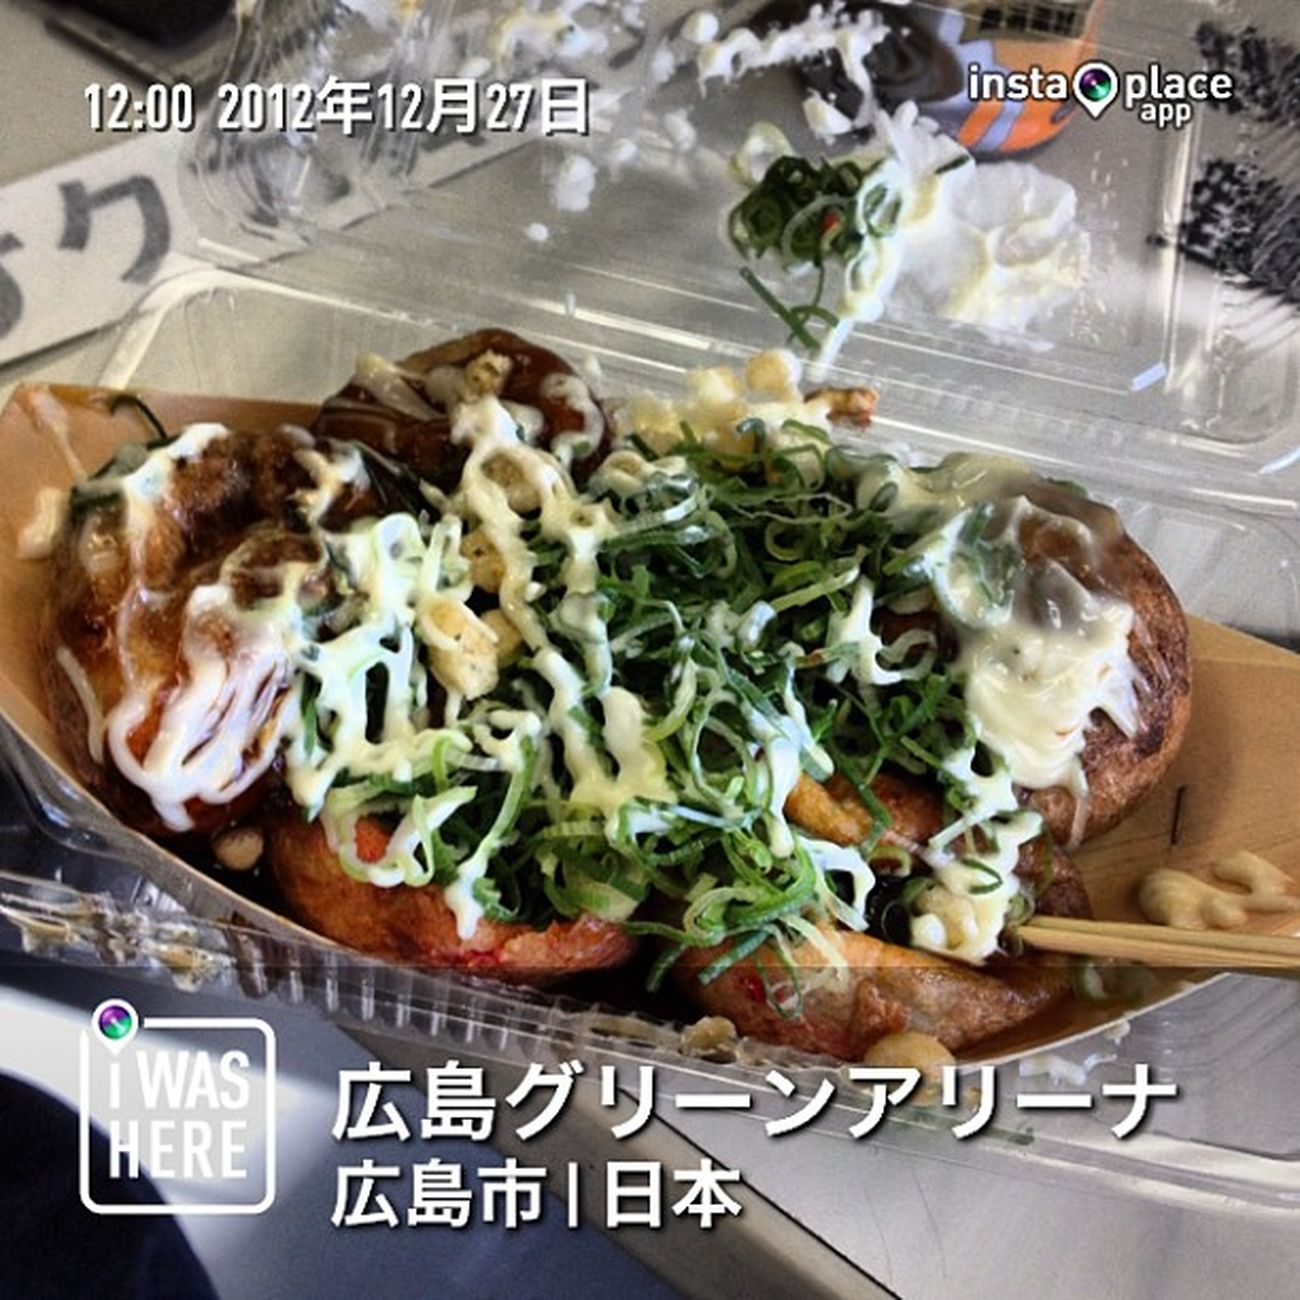 たこ焼き食べるよ!\(^o^)/InstaPlace Instaplaceapp Instagood Photooftheday Instamood Picoftheday Instadaily Photo Instacool Instapic Picture Pic @instaplaceapp Place Earth World 日本 Japan 広島市 Hiroshimashi 広島グリーンアリーナ Art Day